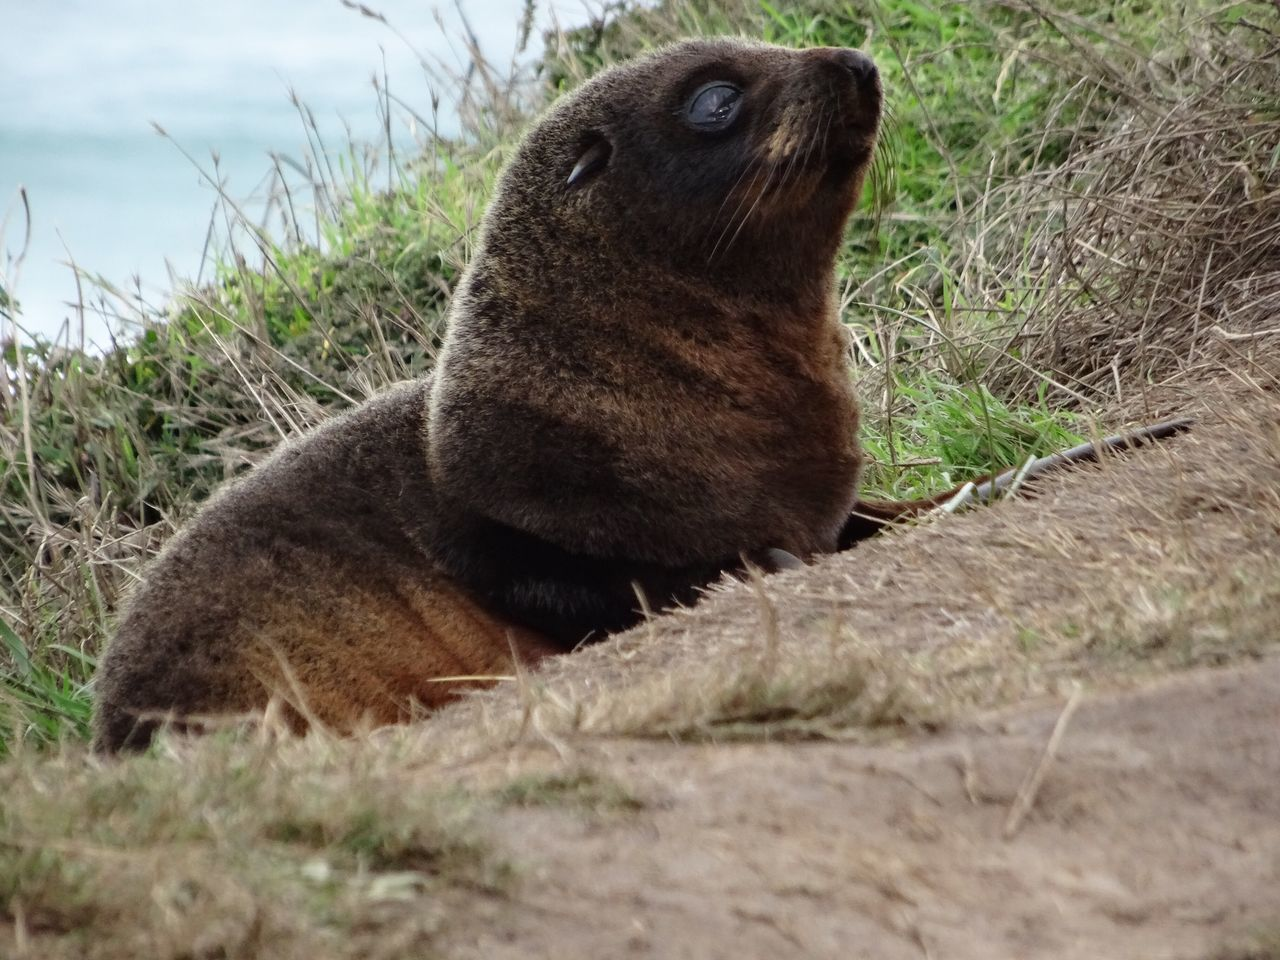 One Animal Animal Themes Mammal Animals In The Wild No People Aquatic Mammal Day Outdoors Close-up Nature Grass Animals Animal Wildlife New Zealand Cute Seal Seals Baby Seal